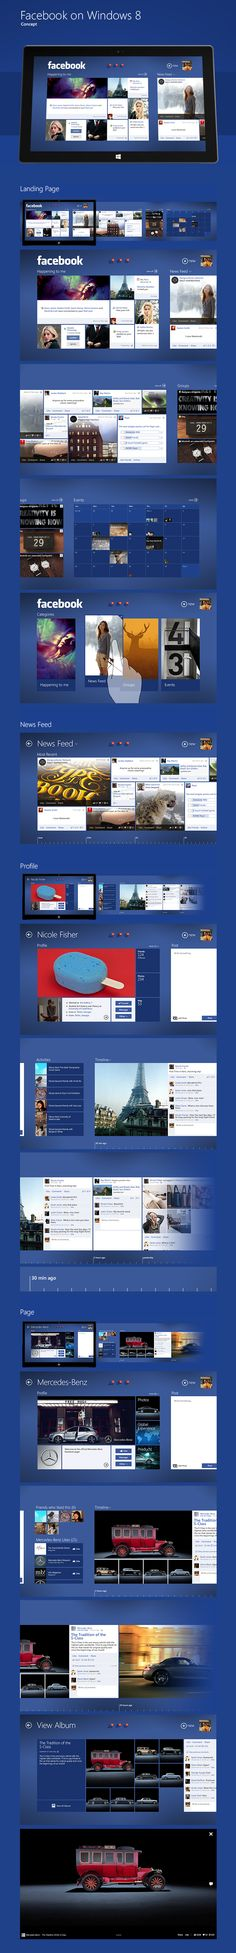 "Facebook on Windows 8 "" I was wondering why there is no Facebook app for Windows 8, so i decided to test my skills in Windows 8 app design :) This is personal concept project. All Photos used in design belong to their respective owners. ""by Shalva Bukia, via Behance"